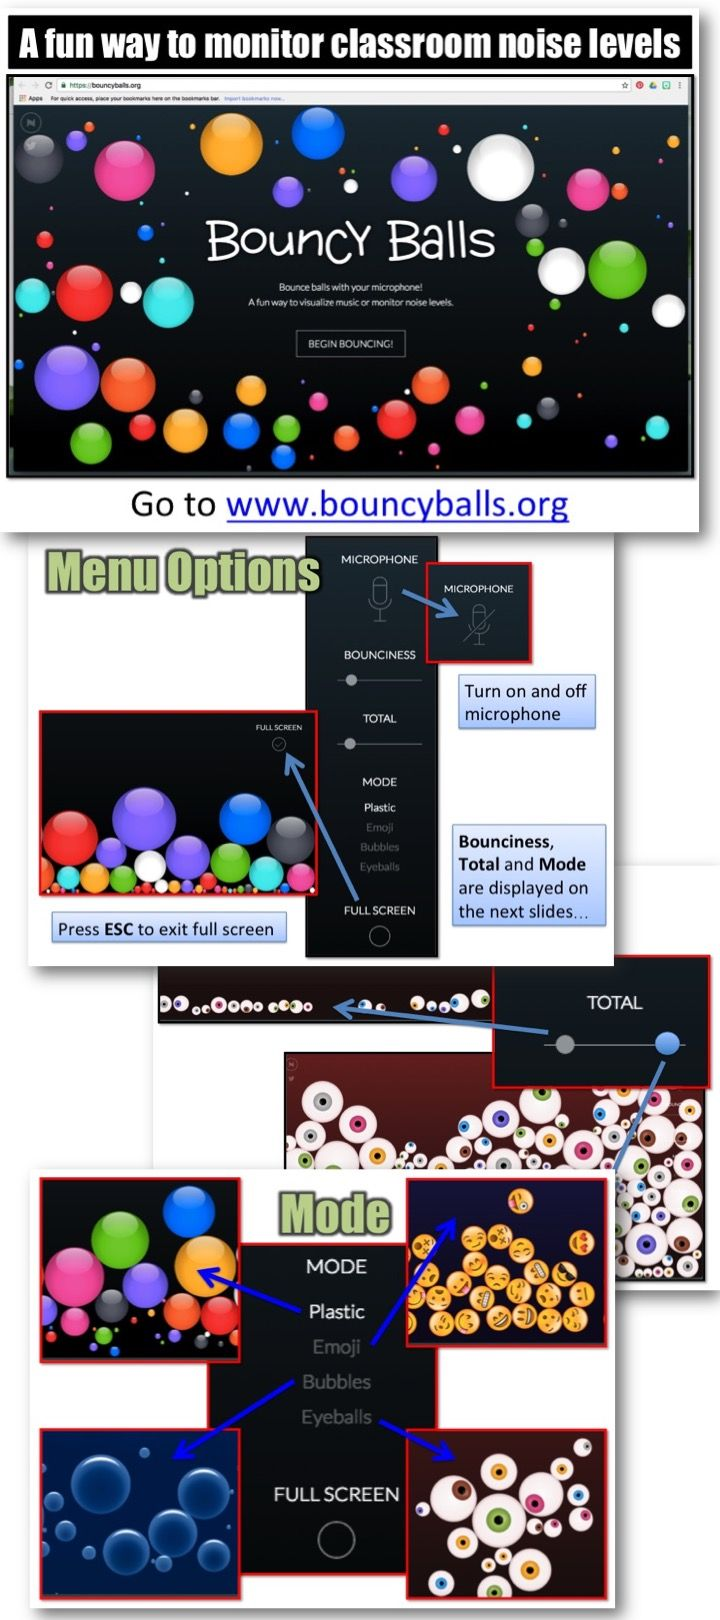 Use this website as a fun way to monitor classroom noise levels!   Show this website with the use of a projector to your students as they are working.  The balls bounce higher as the volume of the classroom increases, giving students a visual indicator to lower their voices.